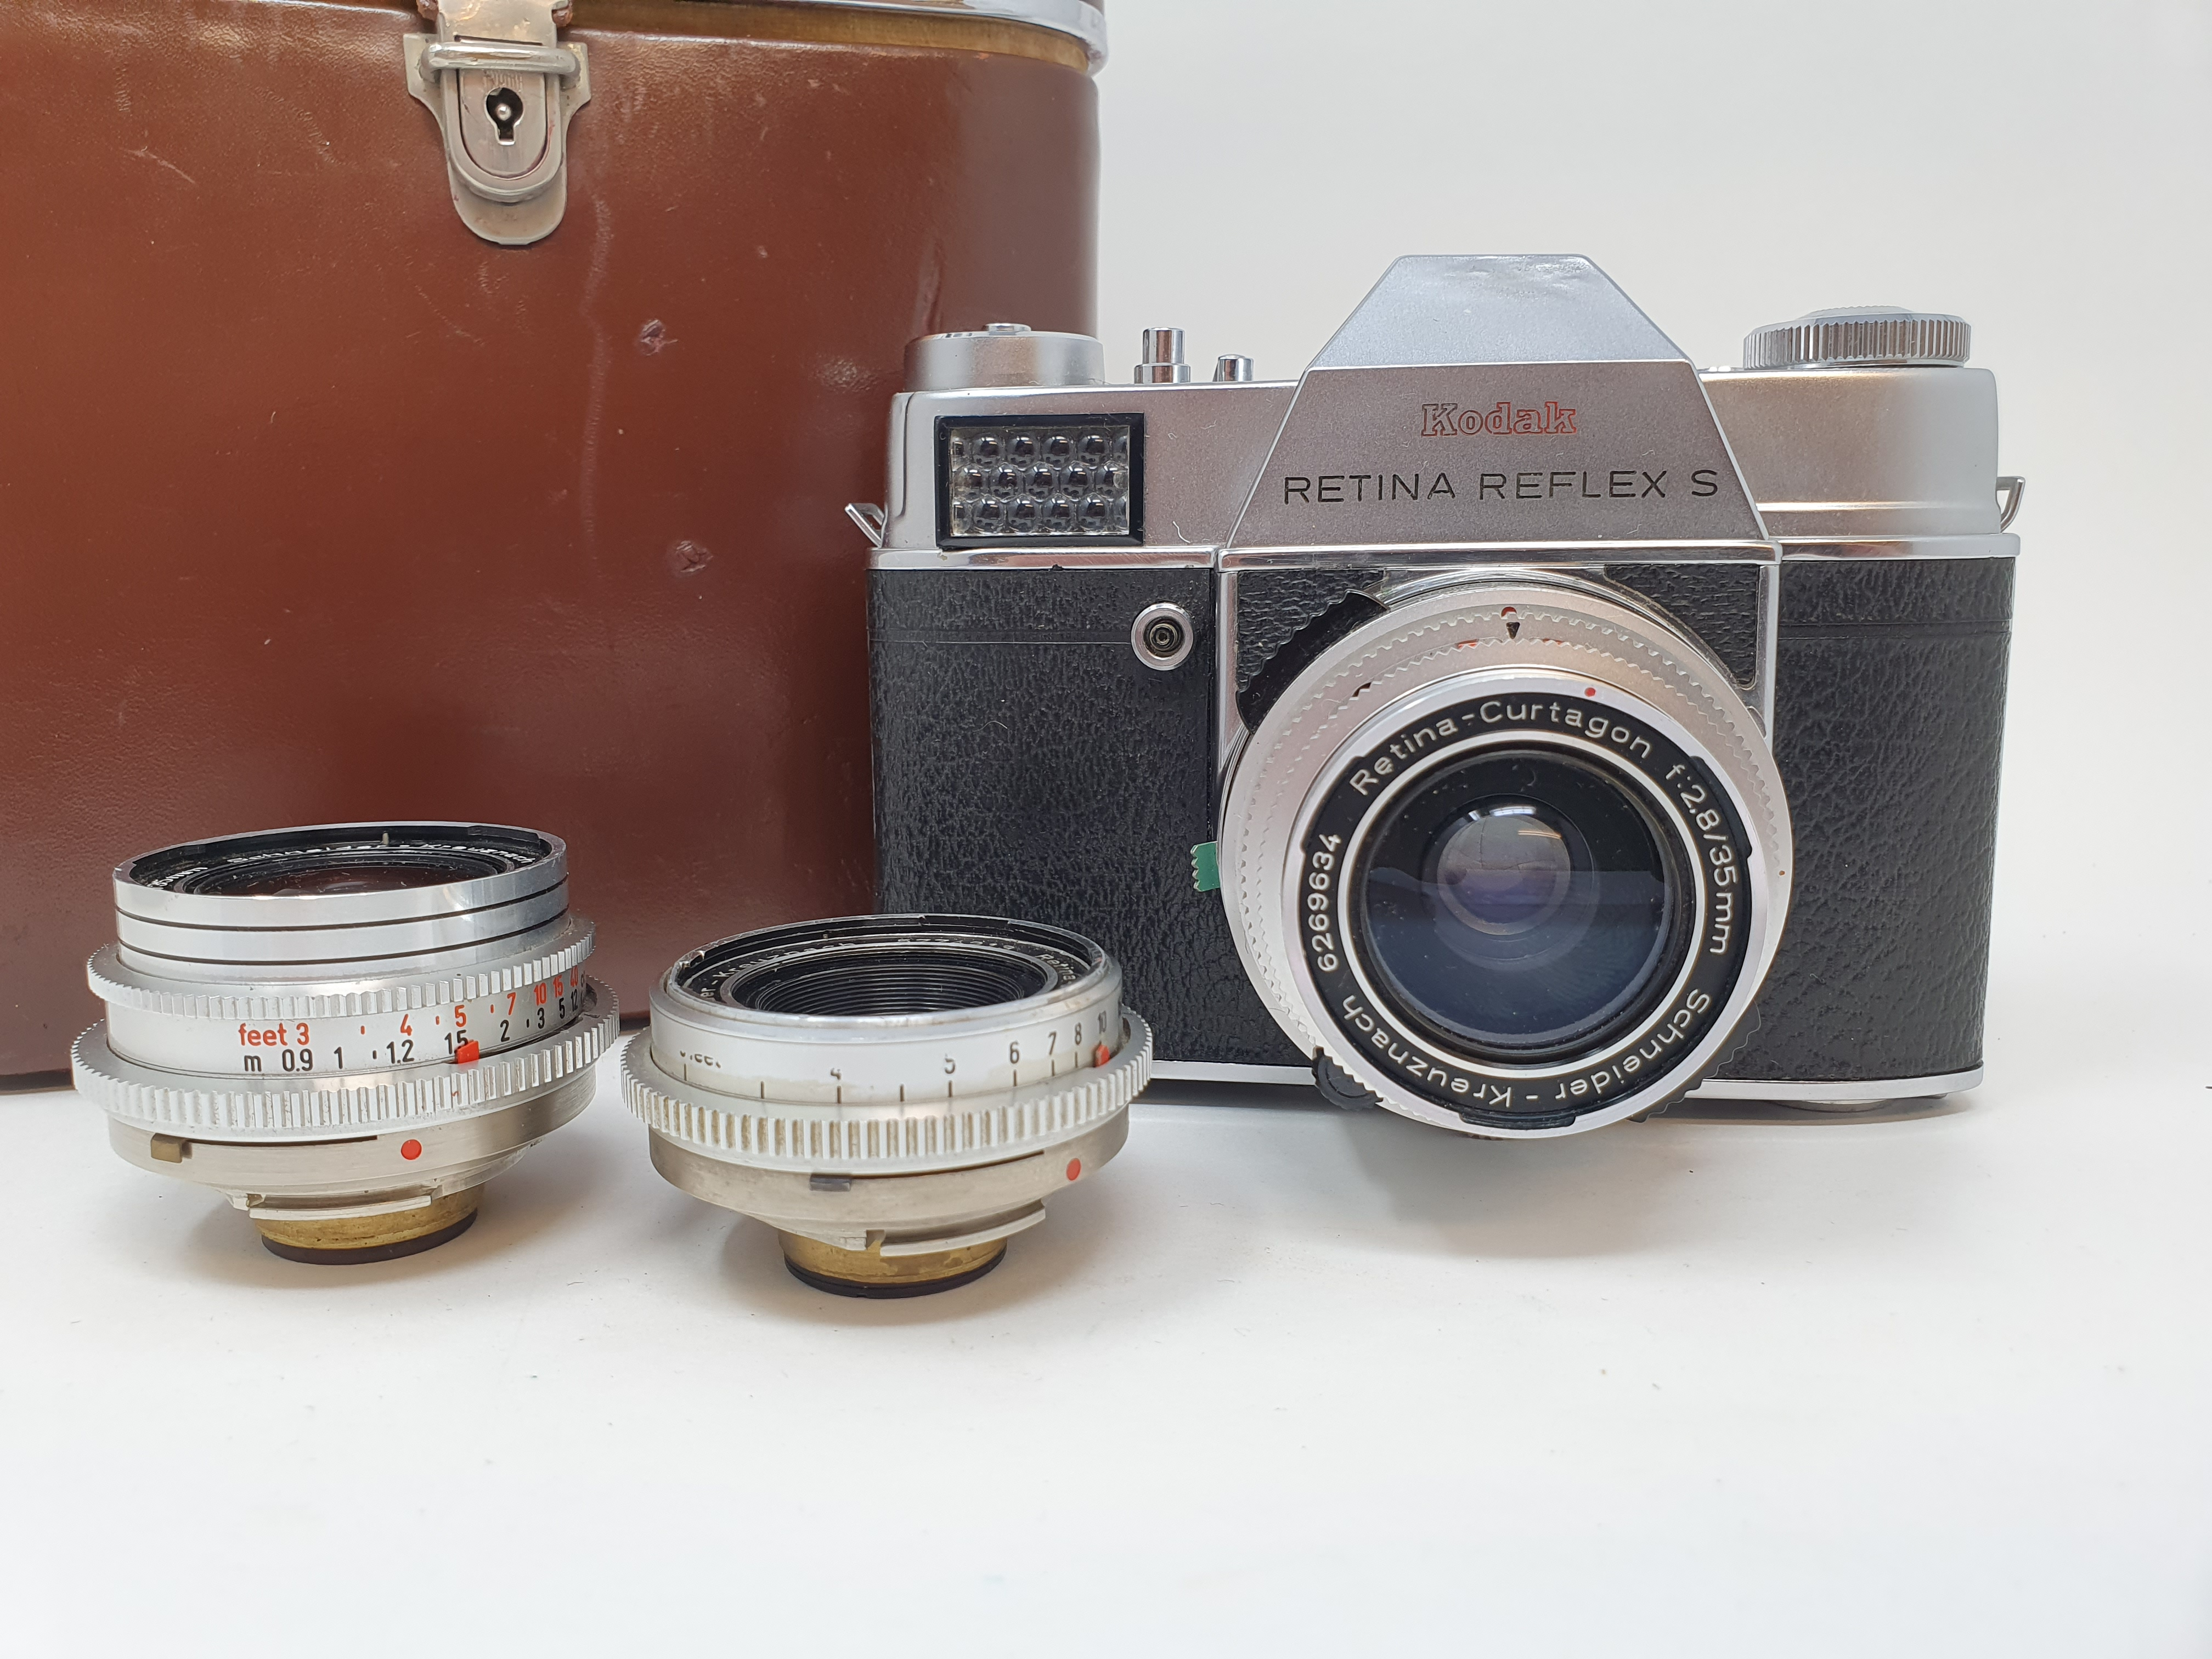 A Kodak Retina Reflex S, serial number 80495, with two extra lenses, in leather carrying case